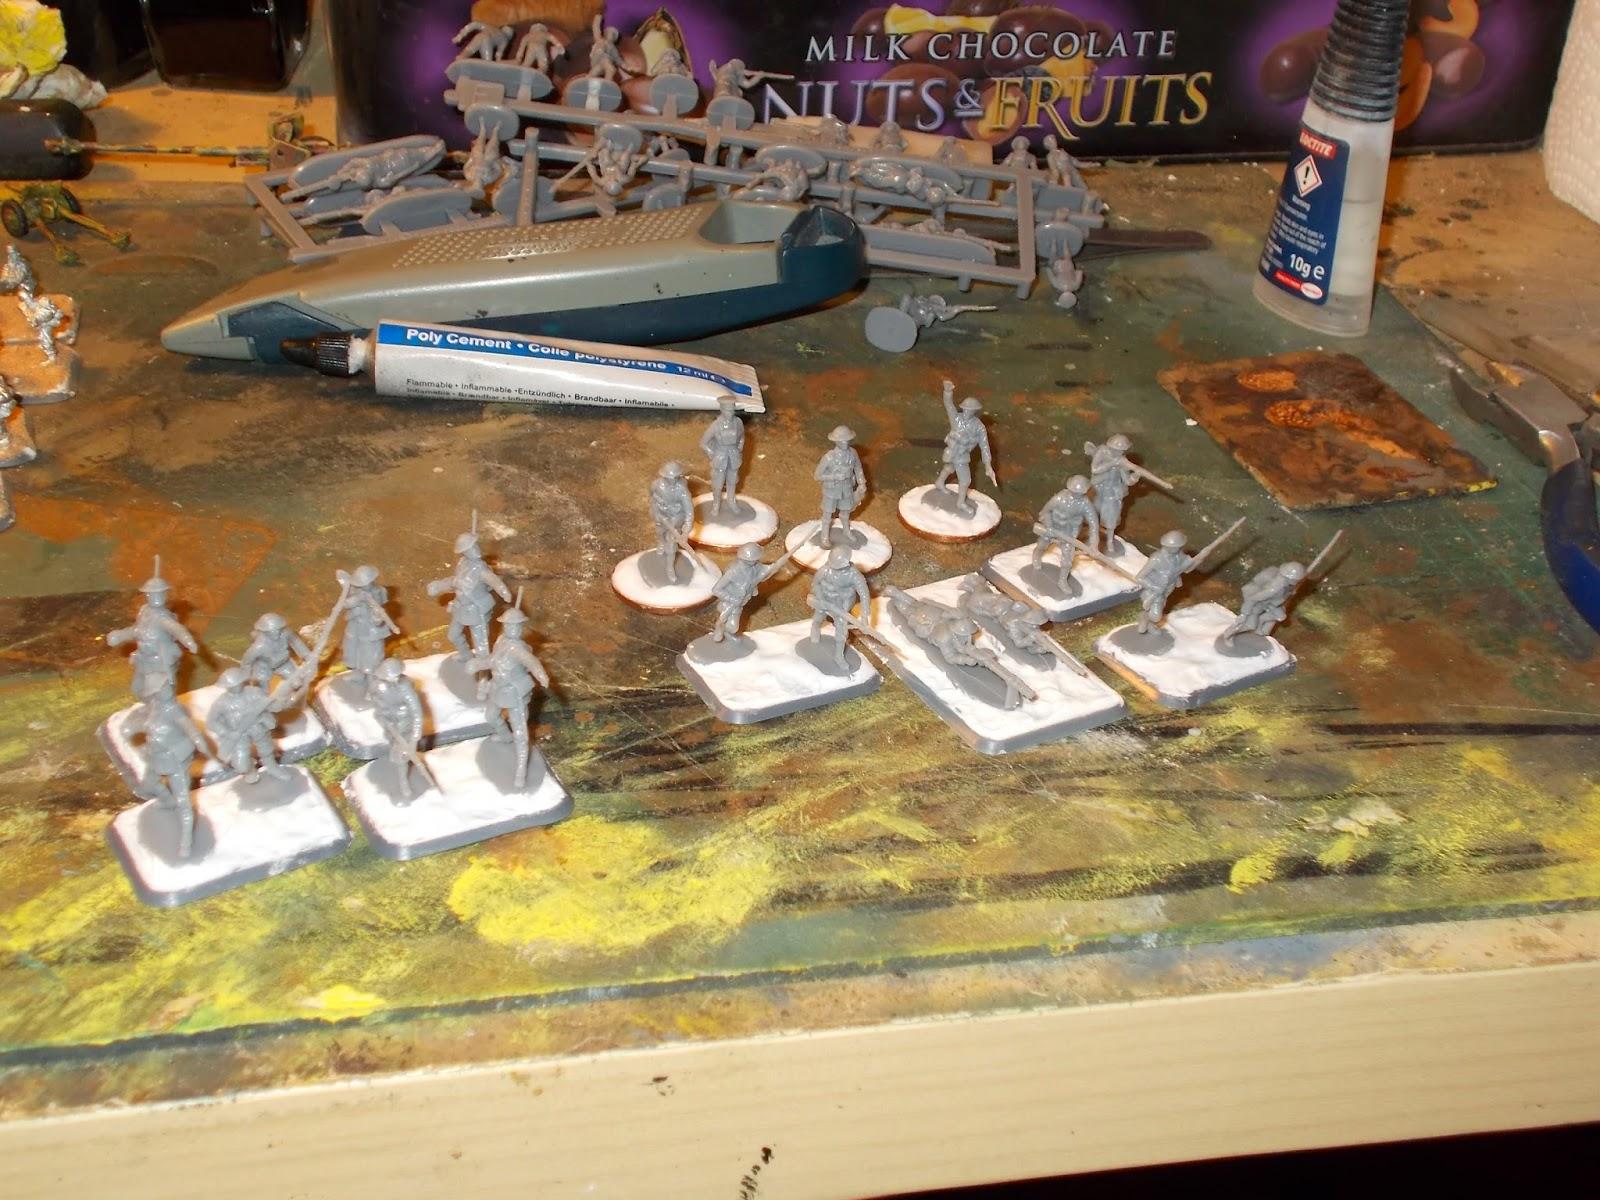 The plastic ficgures are based on small bases